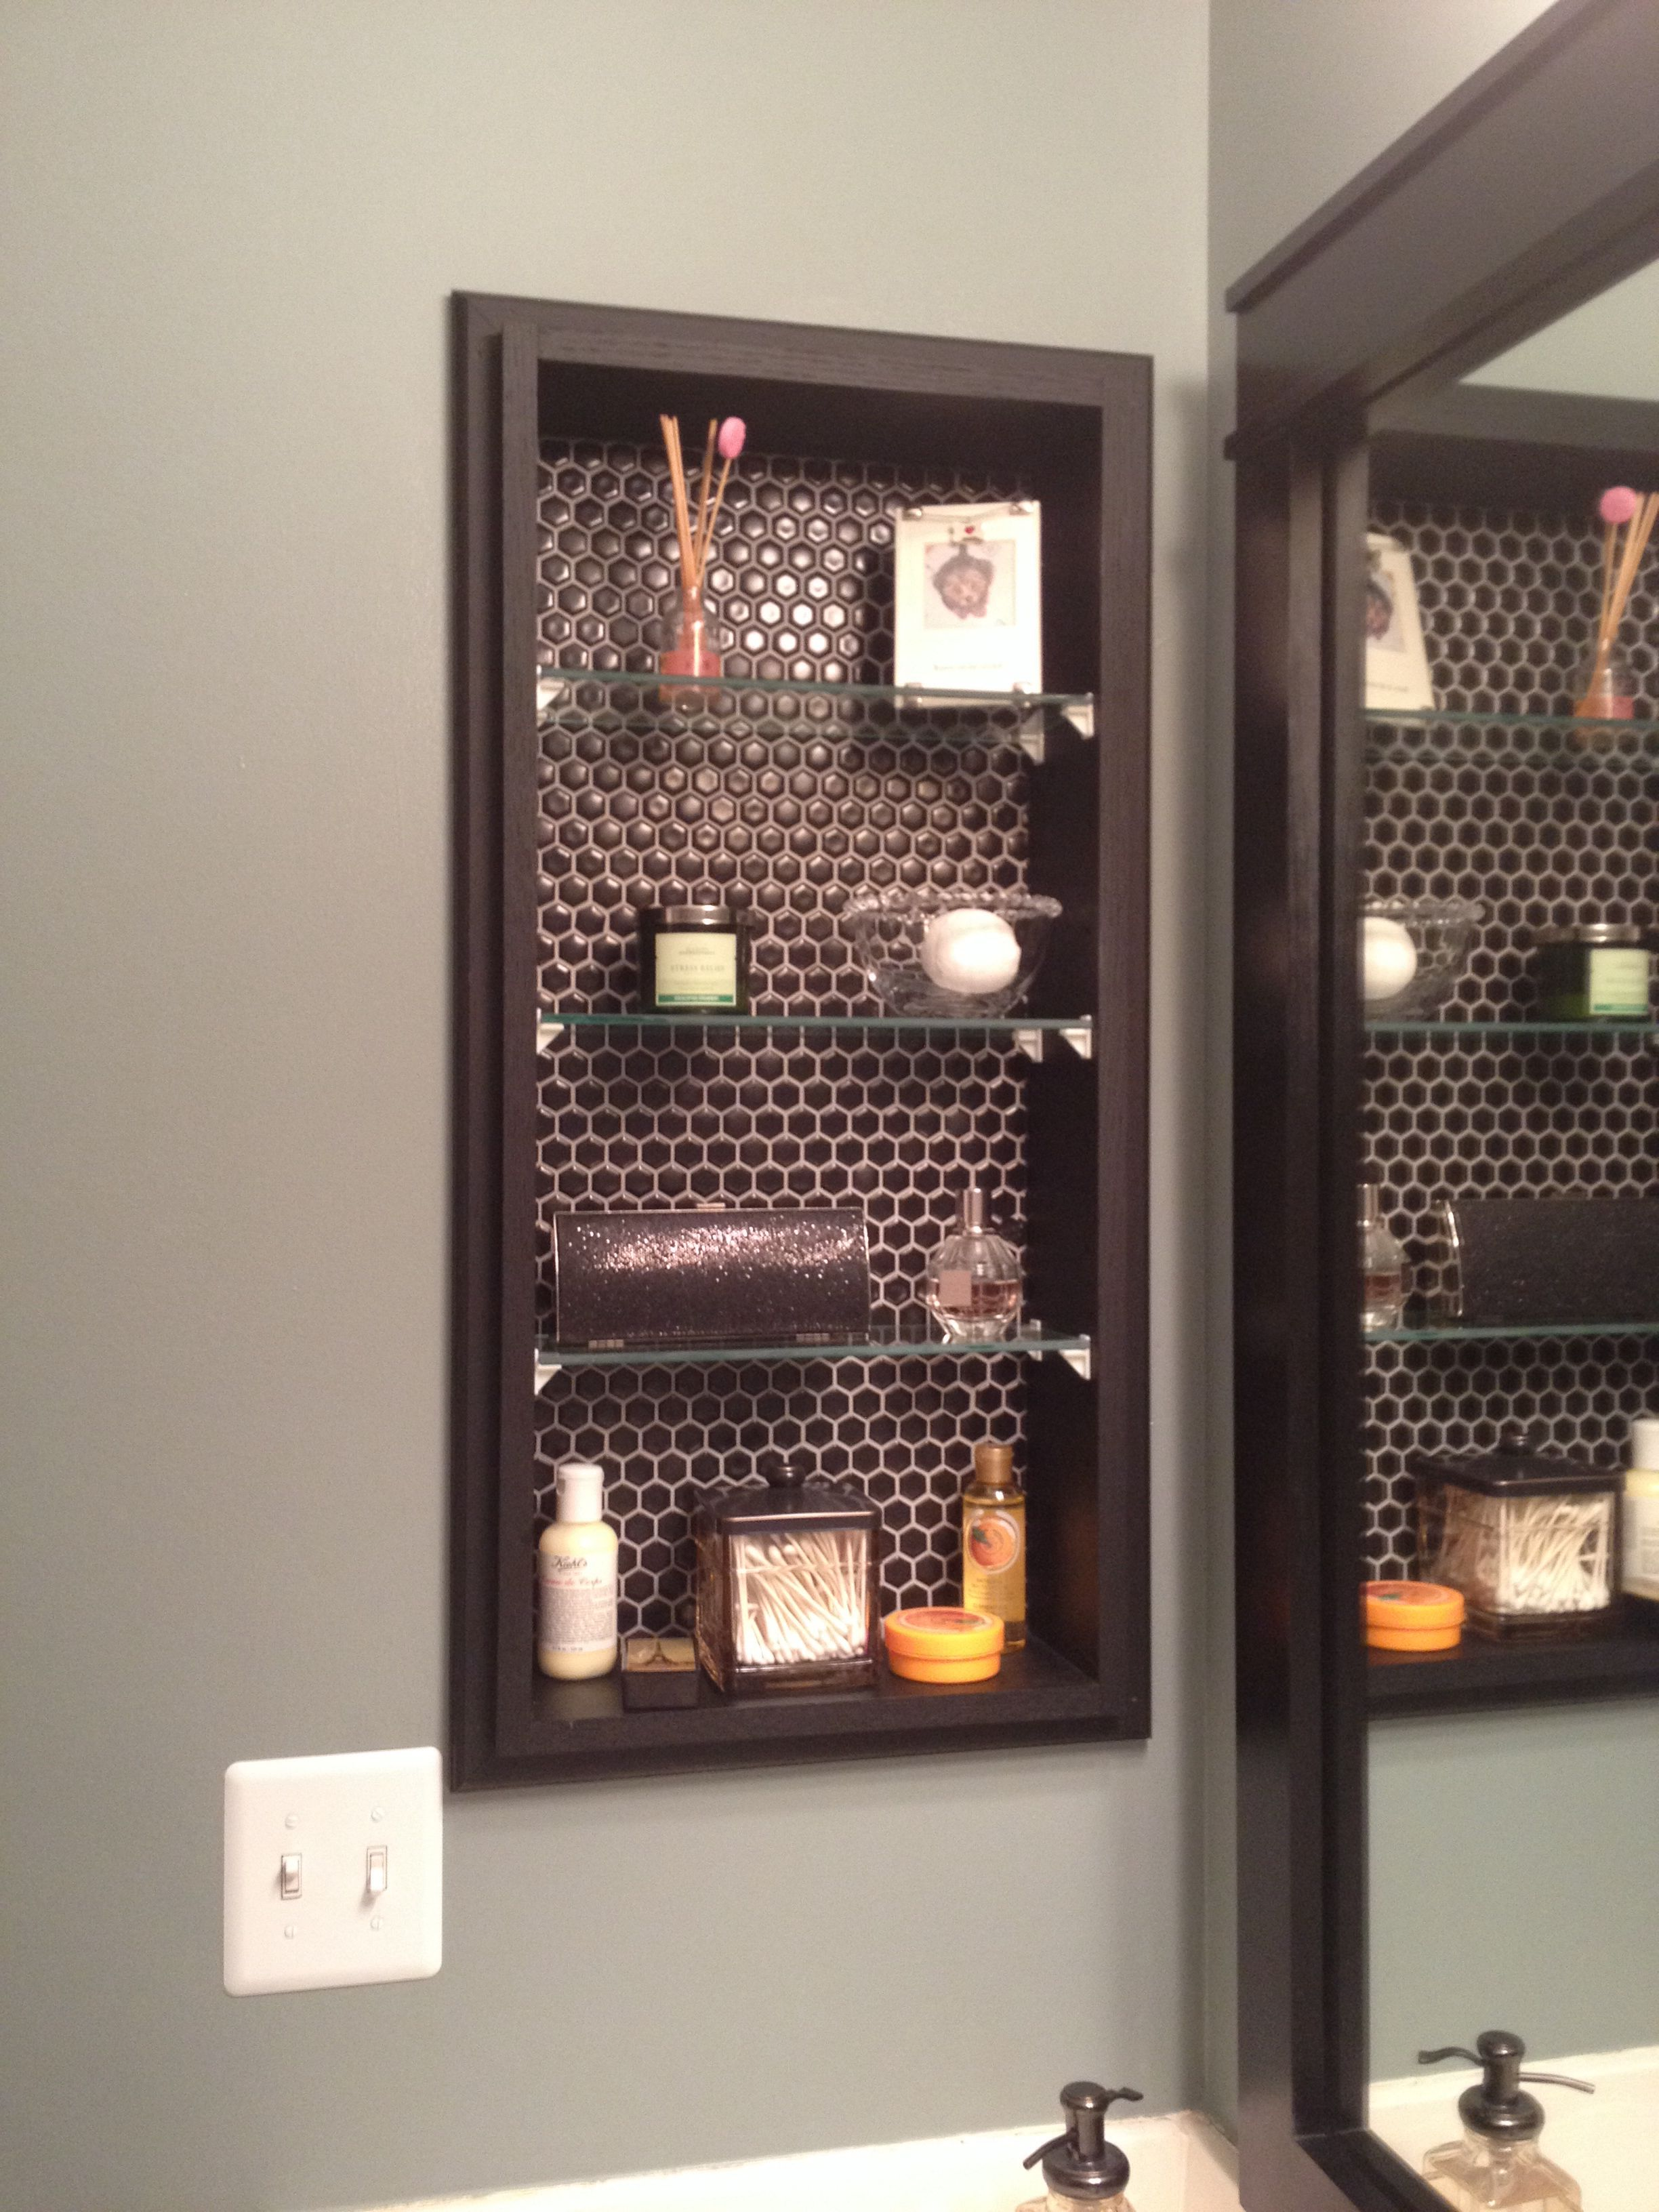 Incroyable Glass Shelving To Replace Medicine Cabinet; Black Hex Tile Backing